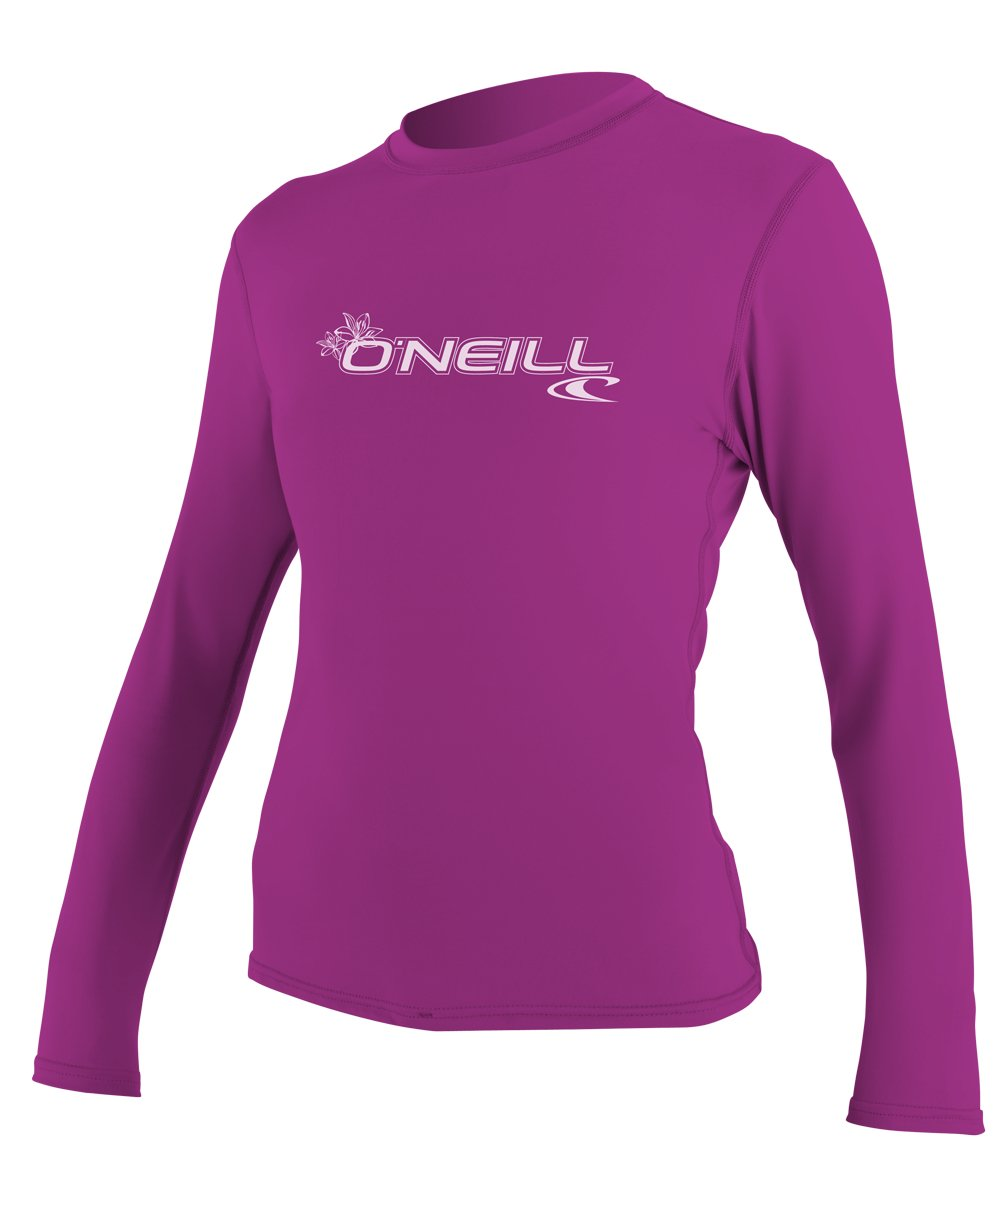 O'Neill Women's Basic Skins Upf 50+ Long Sleeve Sun Shirt, Fox Pink, X-Large by O'Neill Wetsuits